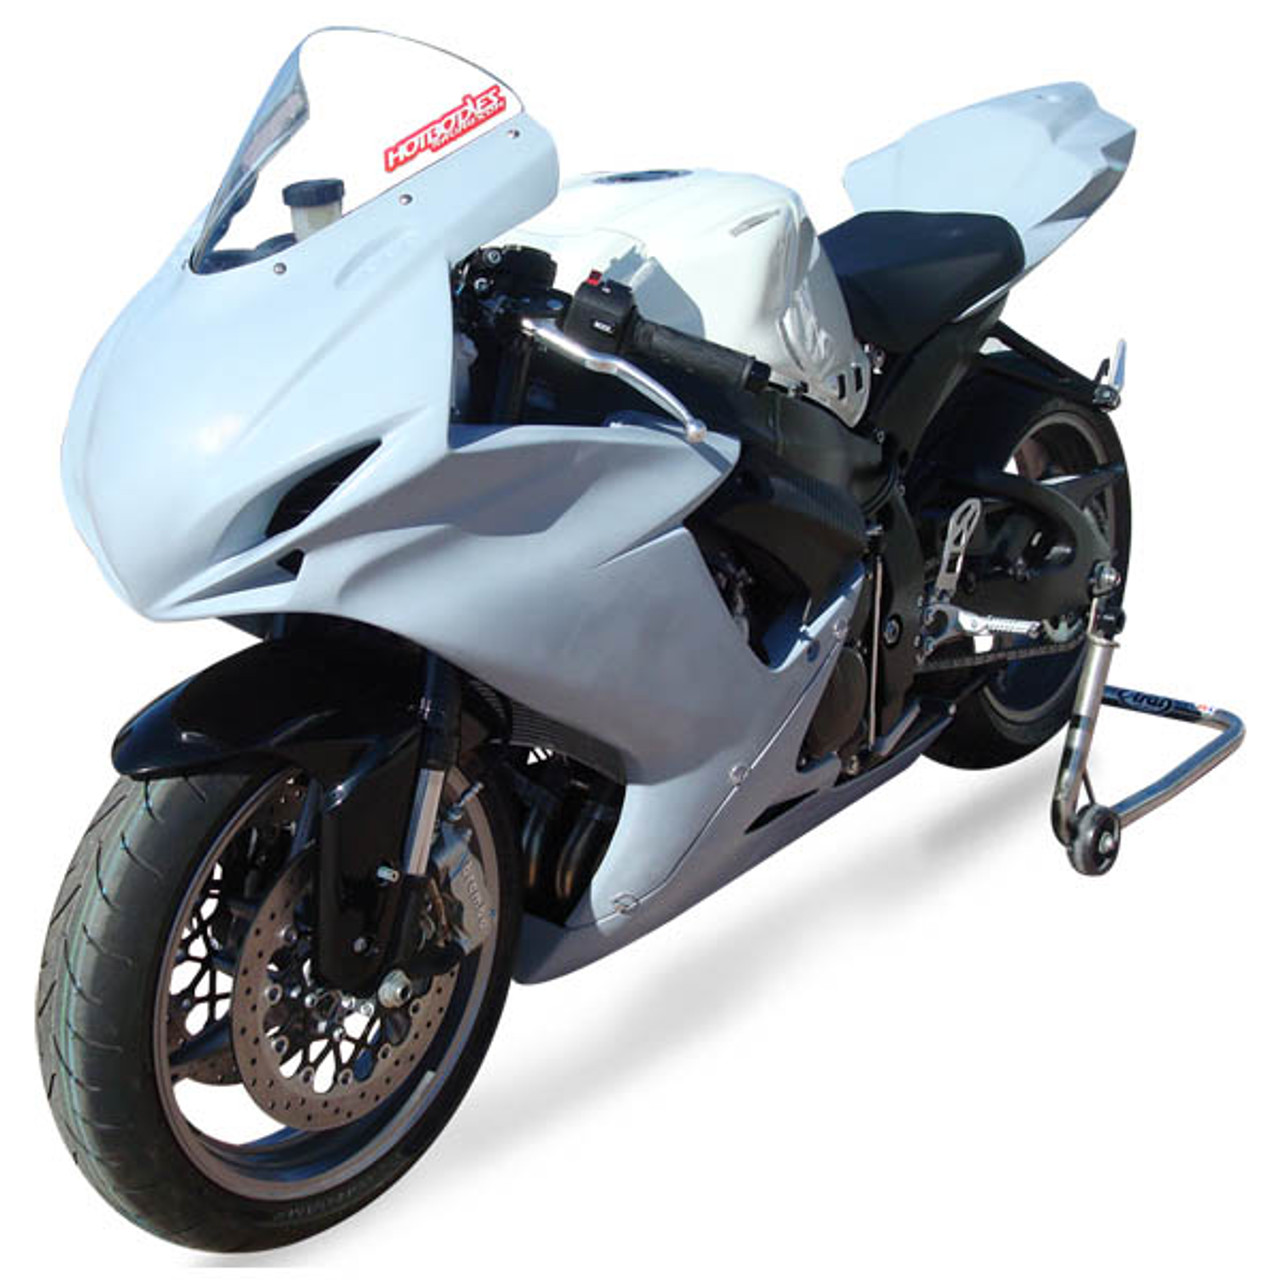 Hotbodies Racing Suzuki GSX-R600/750 11-19 Race Bodywork